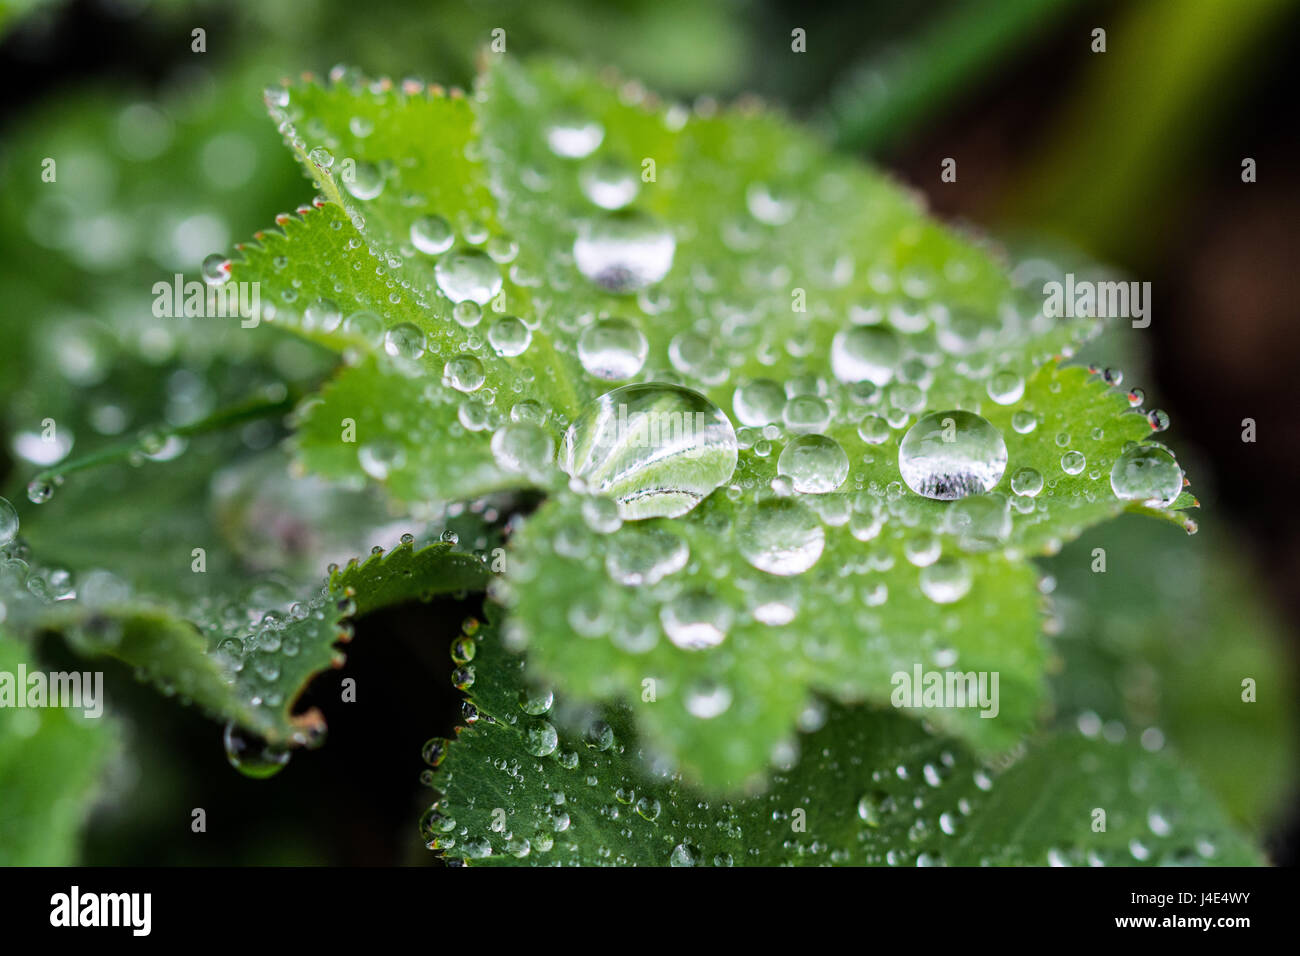 Mousehole, Cornwall, UK. 12th May 2017. UK Weather. After a prolonged dry period, rain falls on the gardens and farmers fields in Cornwall. Farmers have expressed concern over how the extremes of weather during the seasons is making it difficult for them to produce consistent yields of crops such as potatoes. Seen here droplets of rain collecting on the leaves of Alchemilla Mollis. Credit: Simon Maycock/Alamy Live News Stock Photo